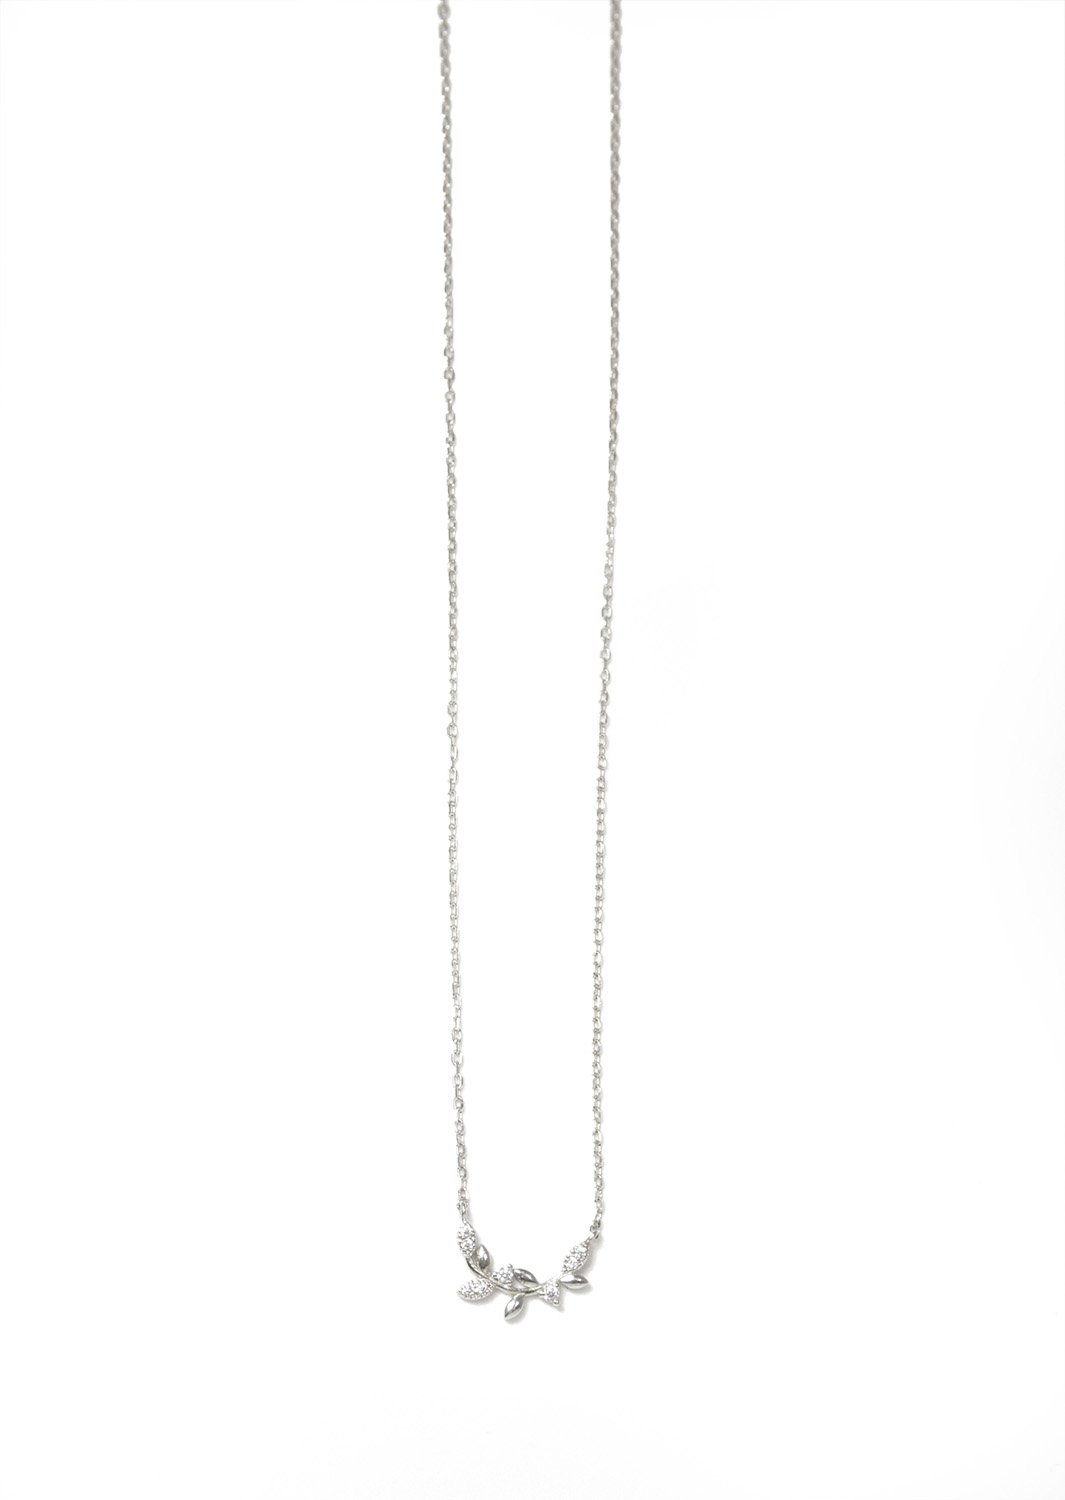 Greek olive branch silver necklace with zircon